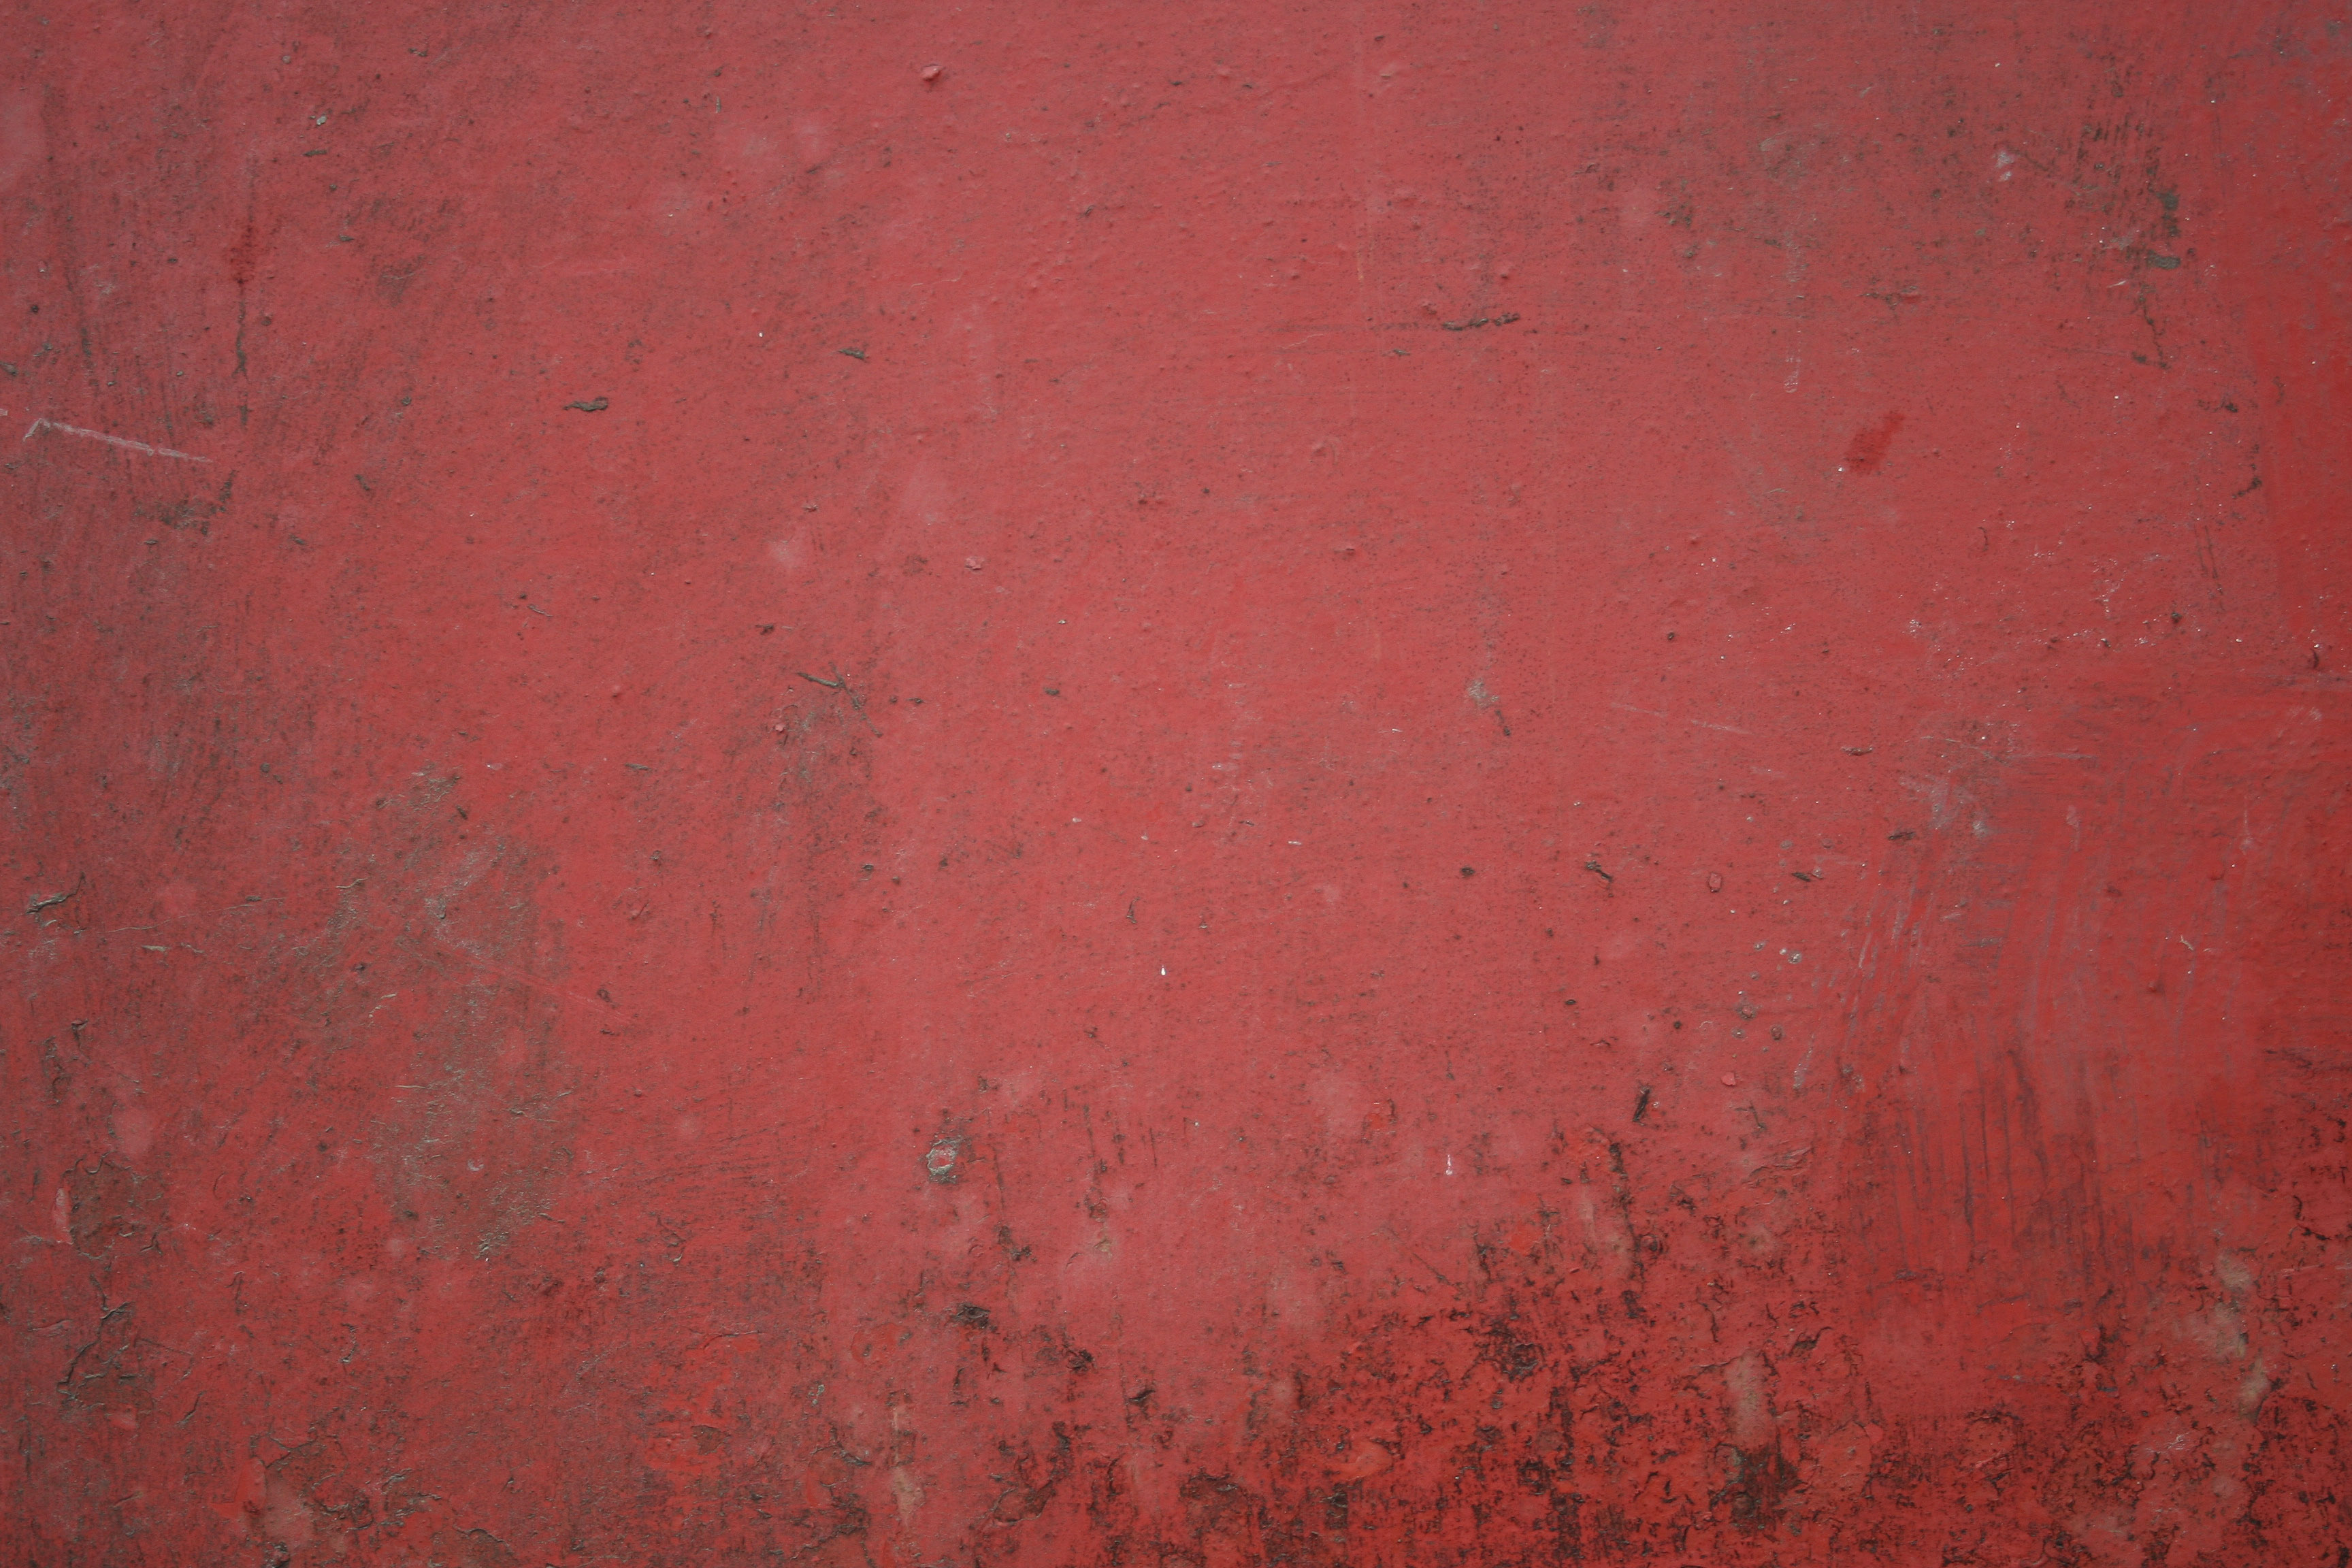 metal   Textures for photoshop free - Part 4Red Metal Texture Seamless